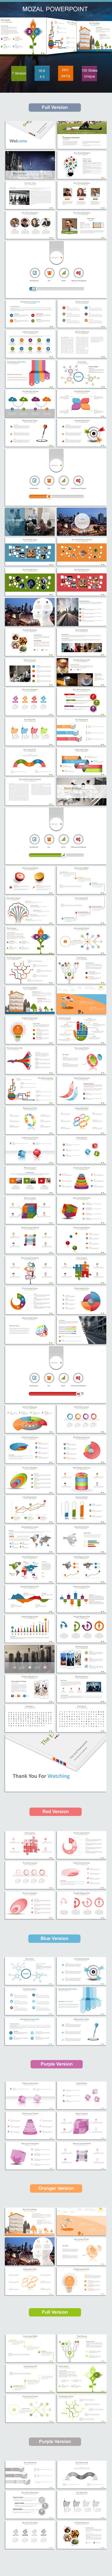 mozal powerpoint (business, chart, clean, client presentation, corporate presentation, creative, editable presentation, flat, full hd, infographic presentation, multipurpose, portfolio, powerpoint, powerpoint presentation, powerpoint template, pptx, professional, projects, showcase, social media, social network presentation, template, timeline)